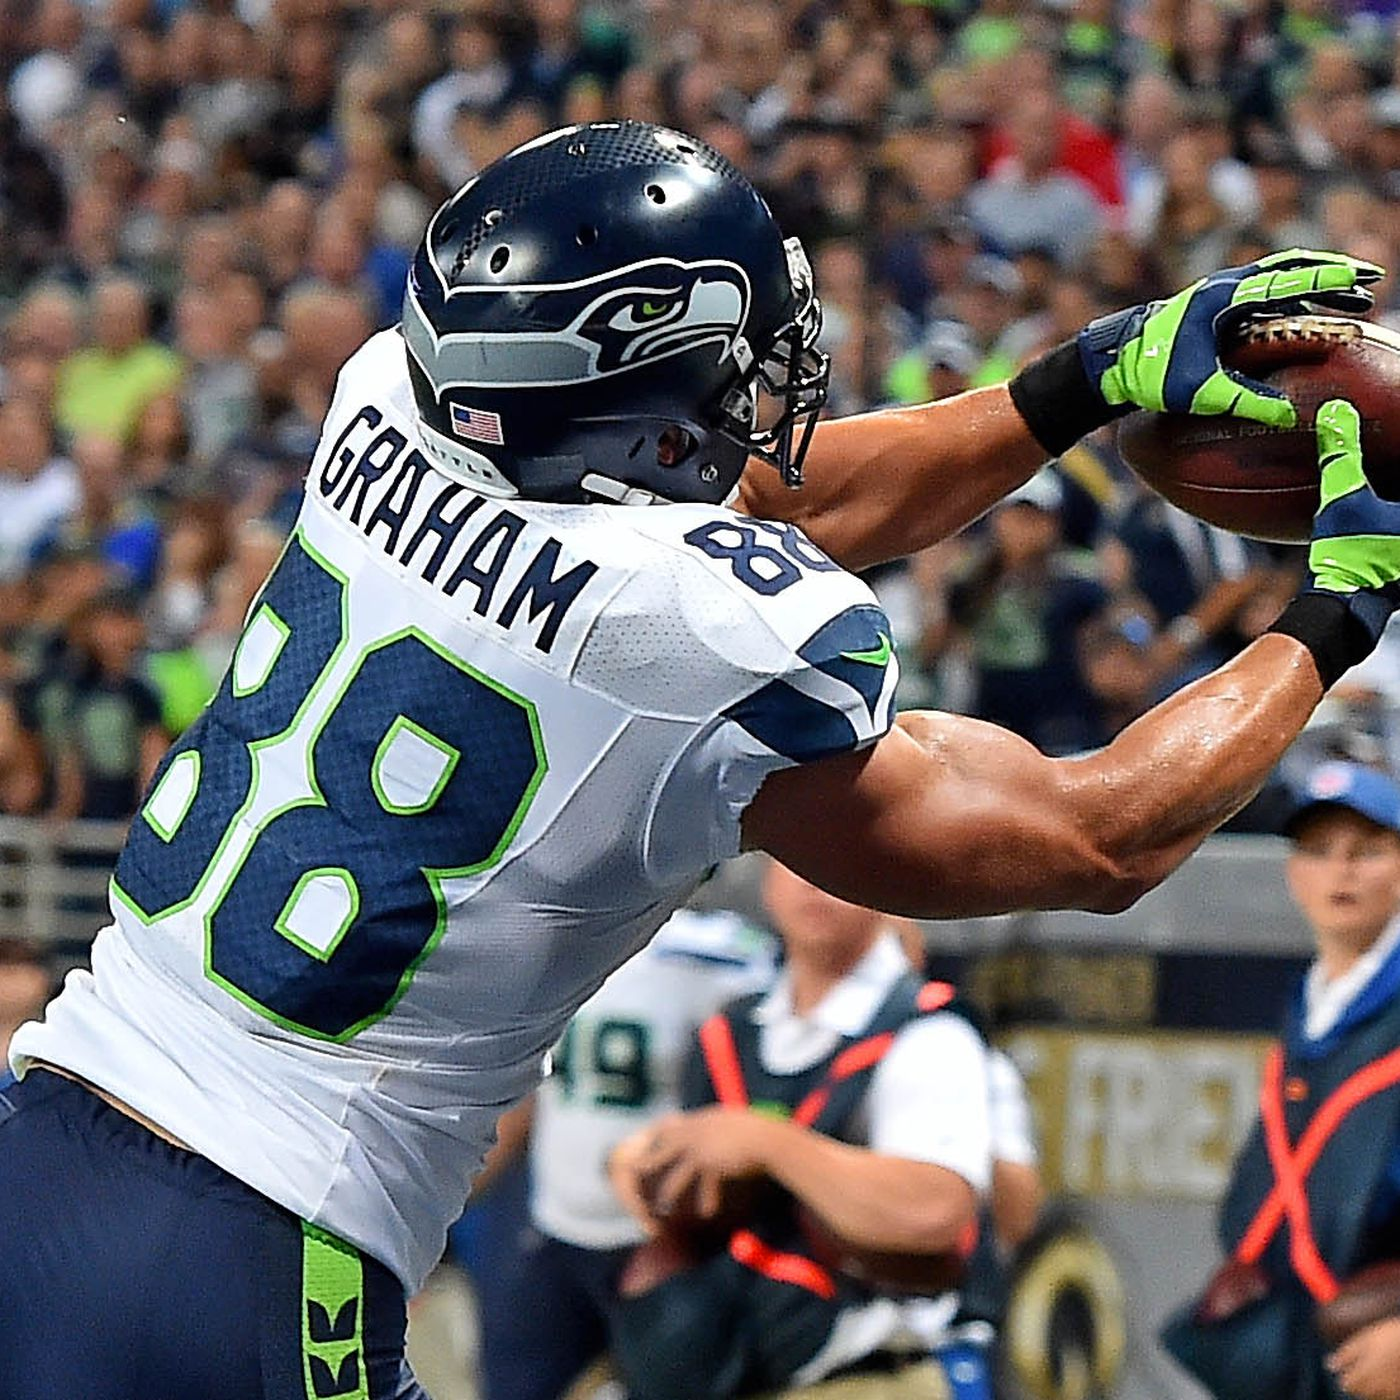 94016d5c0fd Using Jimmy Graham & the Seahawks Passing Game - Field Gulls